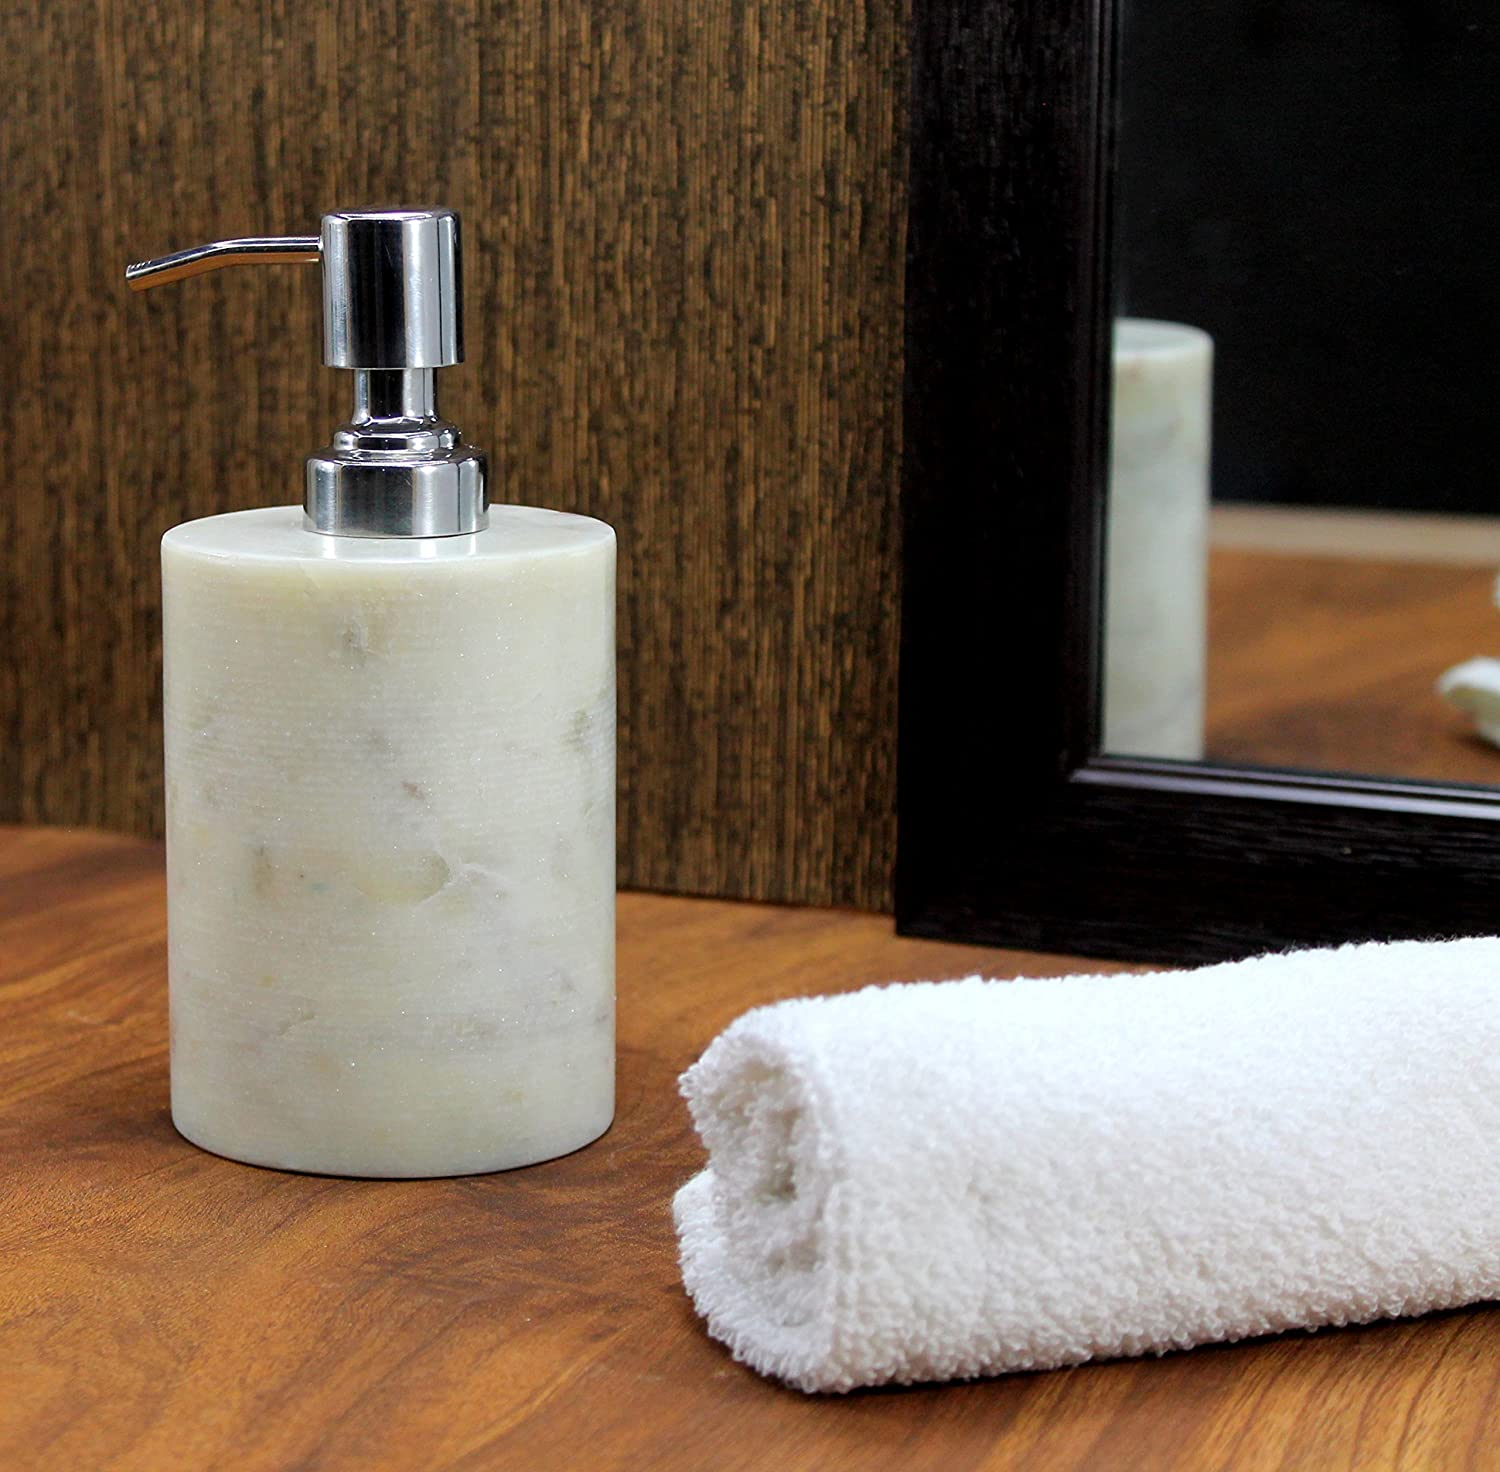 KLEO Soap Lotion Dispenser Made of Genuine Indian Marble in